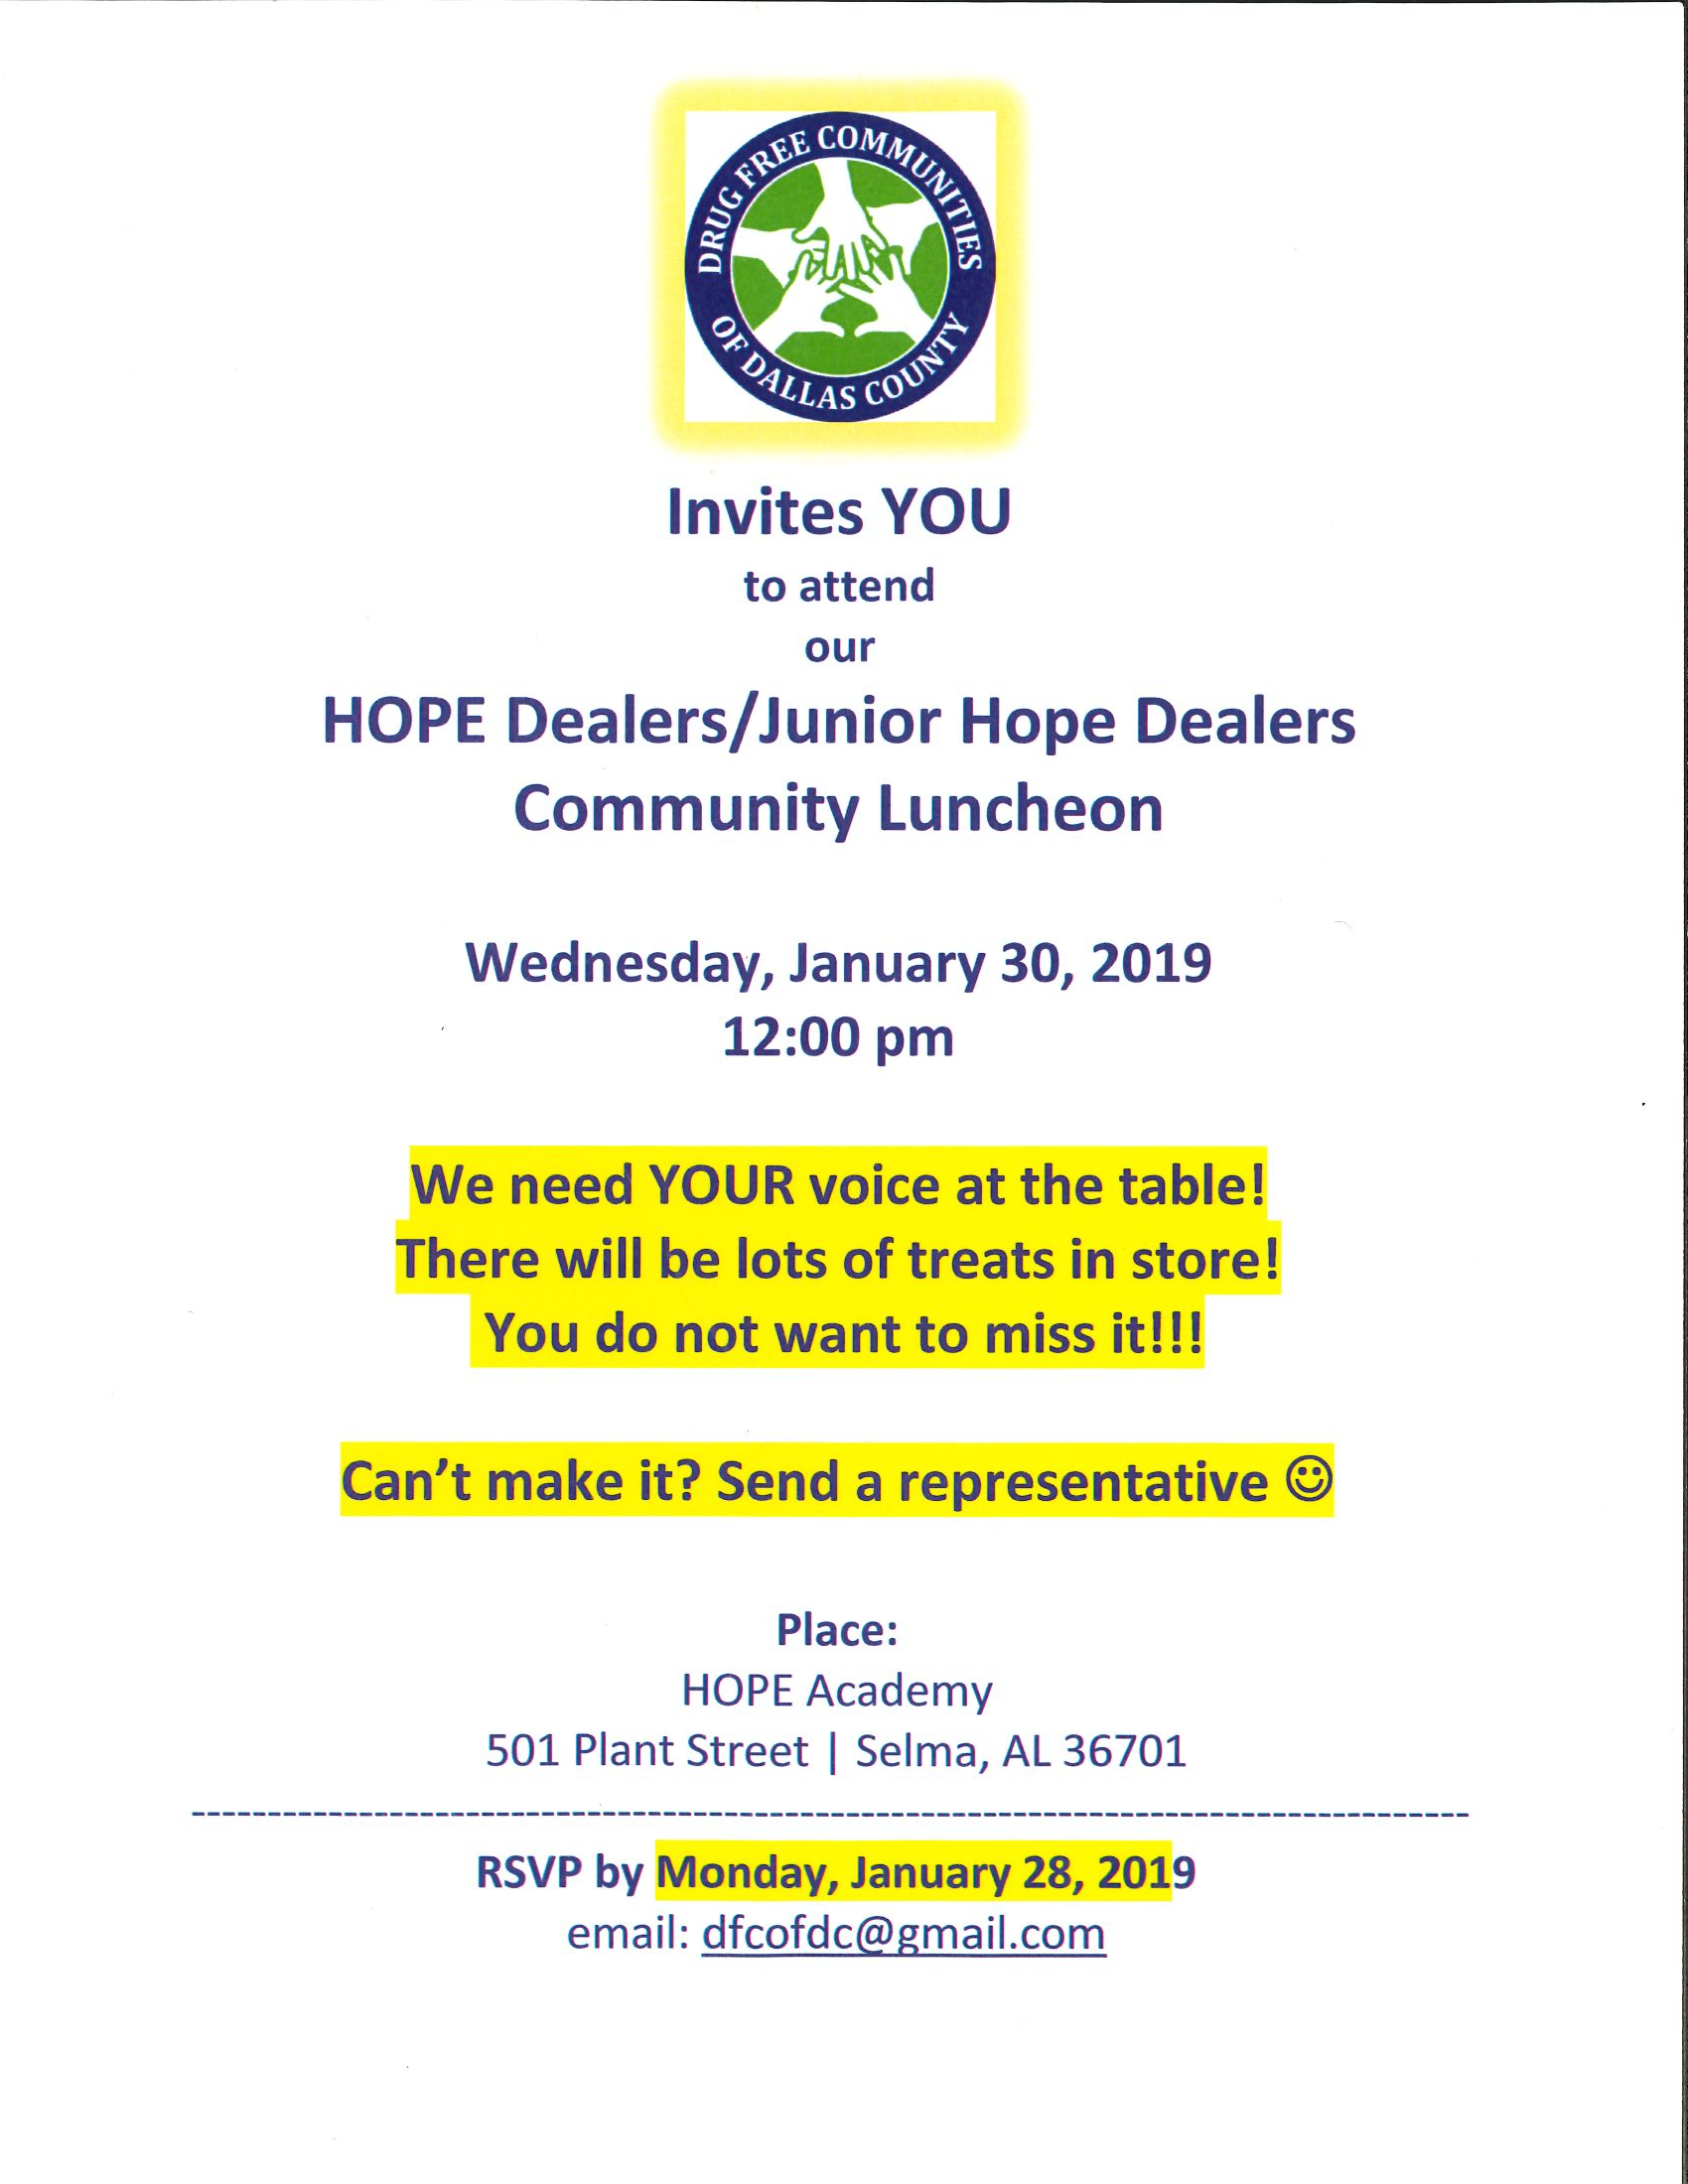 Hope Dealers Junior Hope Dealers Community Luncheon